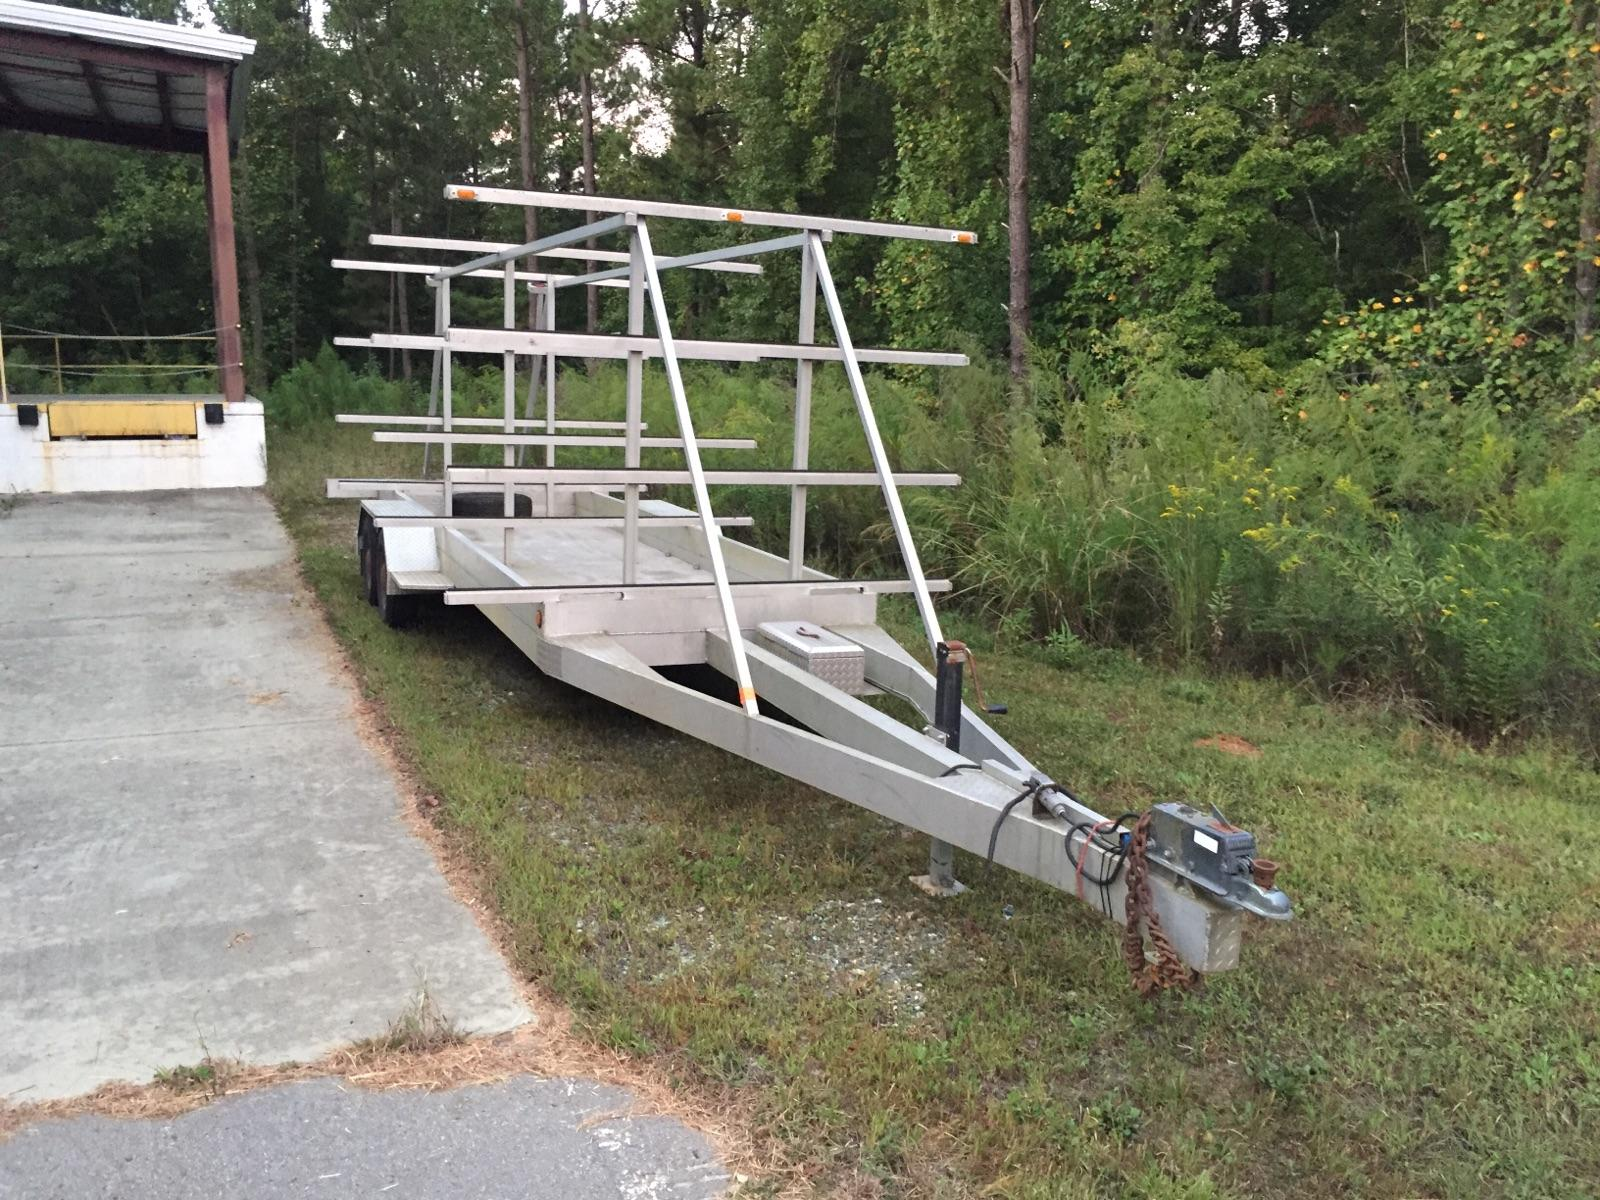 All aluminum: lightweight, easy to handle, nothing to rost